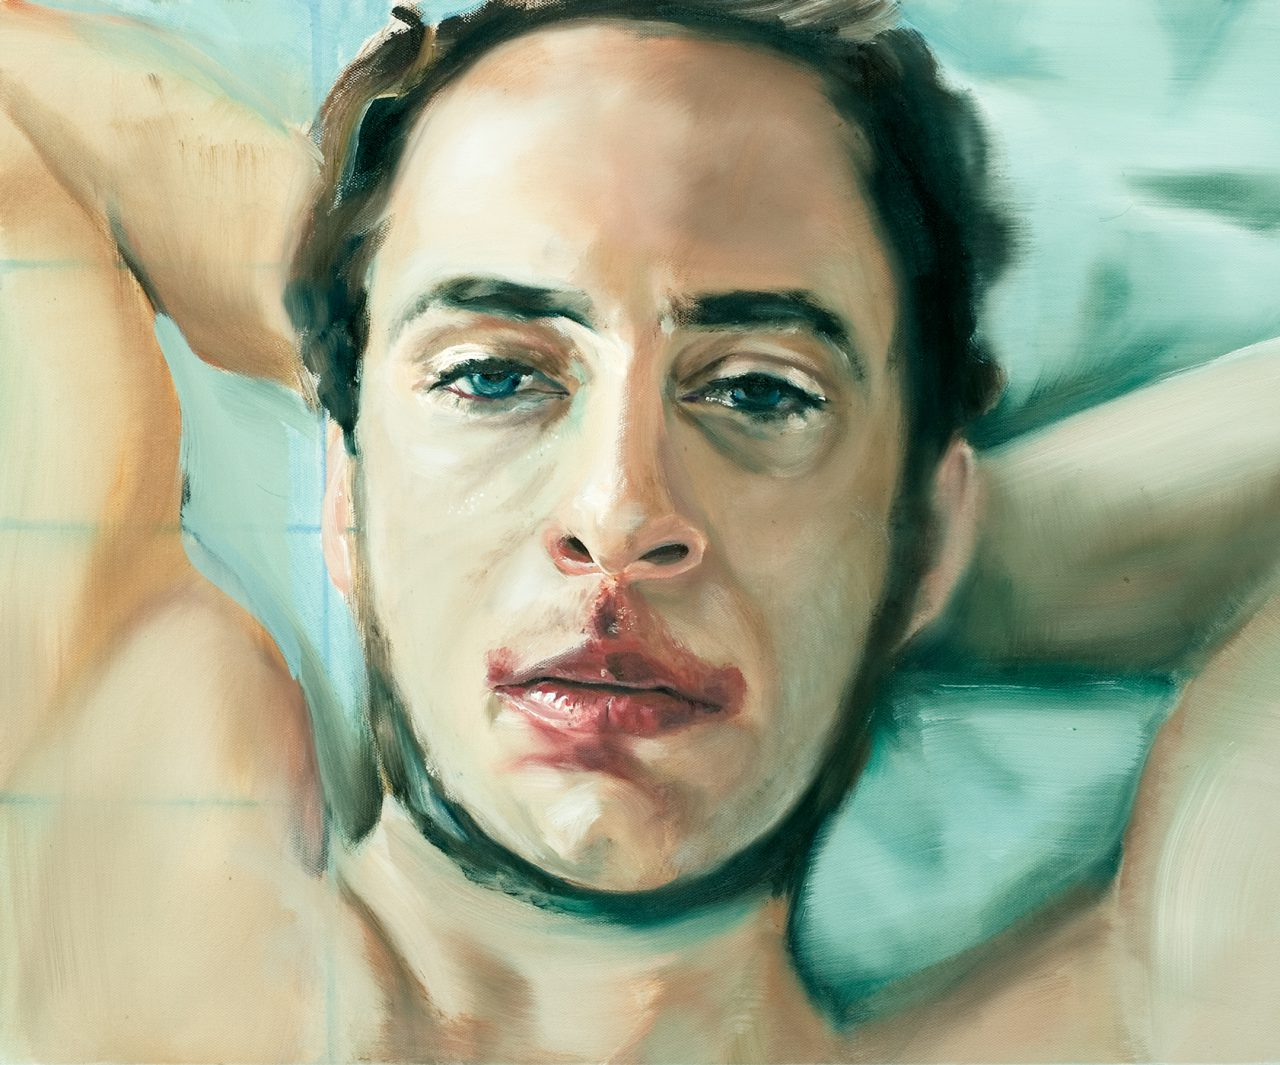 party (man with red lips)/party (Mann mit roten Lippen) ––– 60x50cm ––– 2008––– oil on linen/Öl auf Leinen